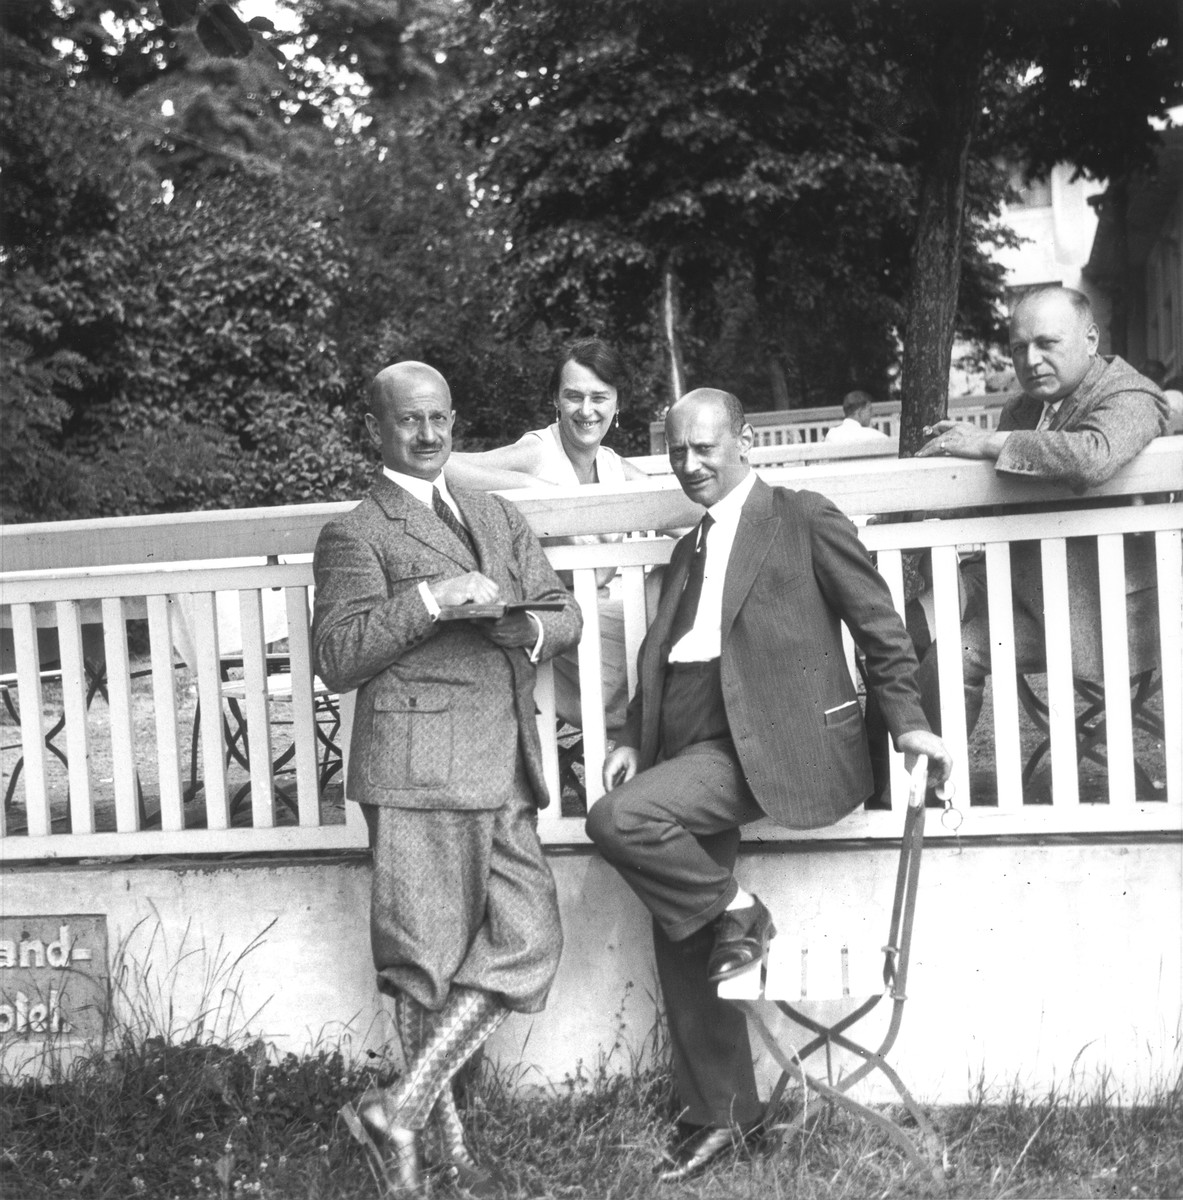 Georg Anker (second from the right) poses with friends on the terrace of a hotel.